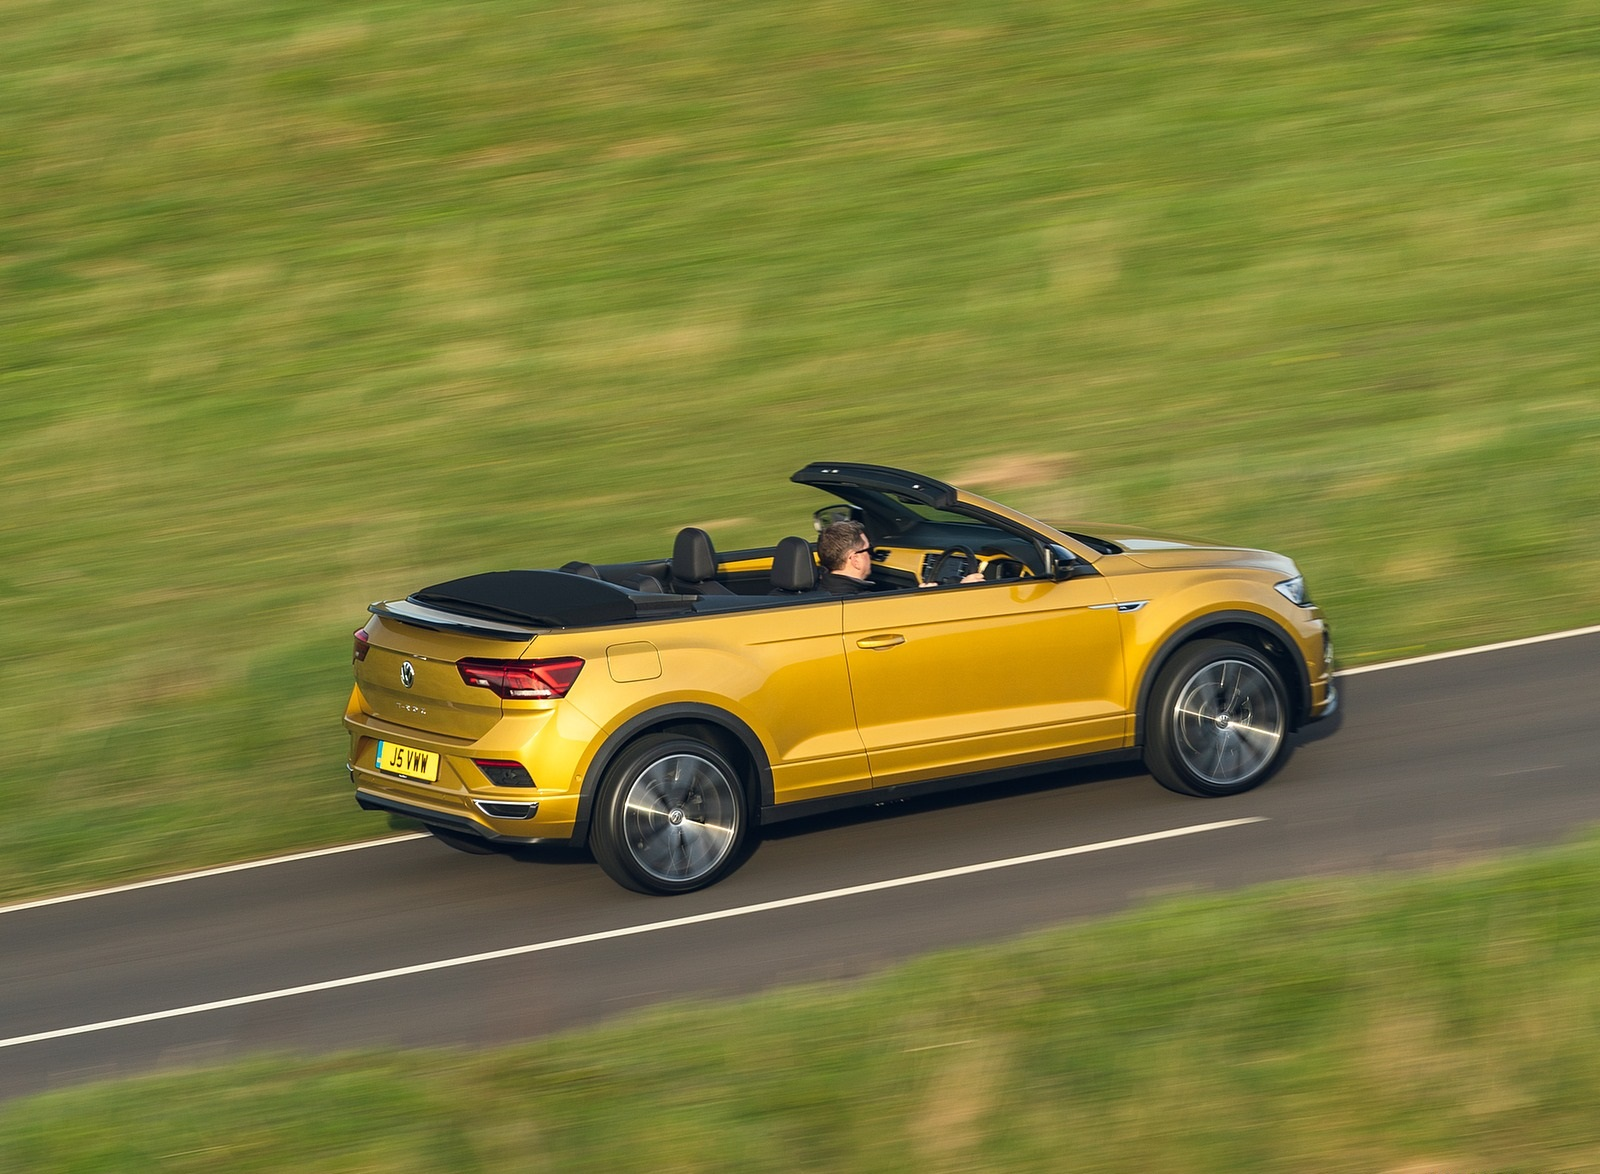 2020 Volkswagen T-Roc R-Line Cabriolet (UK-Spec) Rear Three-Quarter Wallpapers (8)